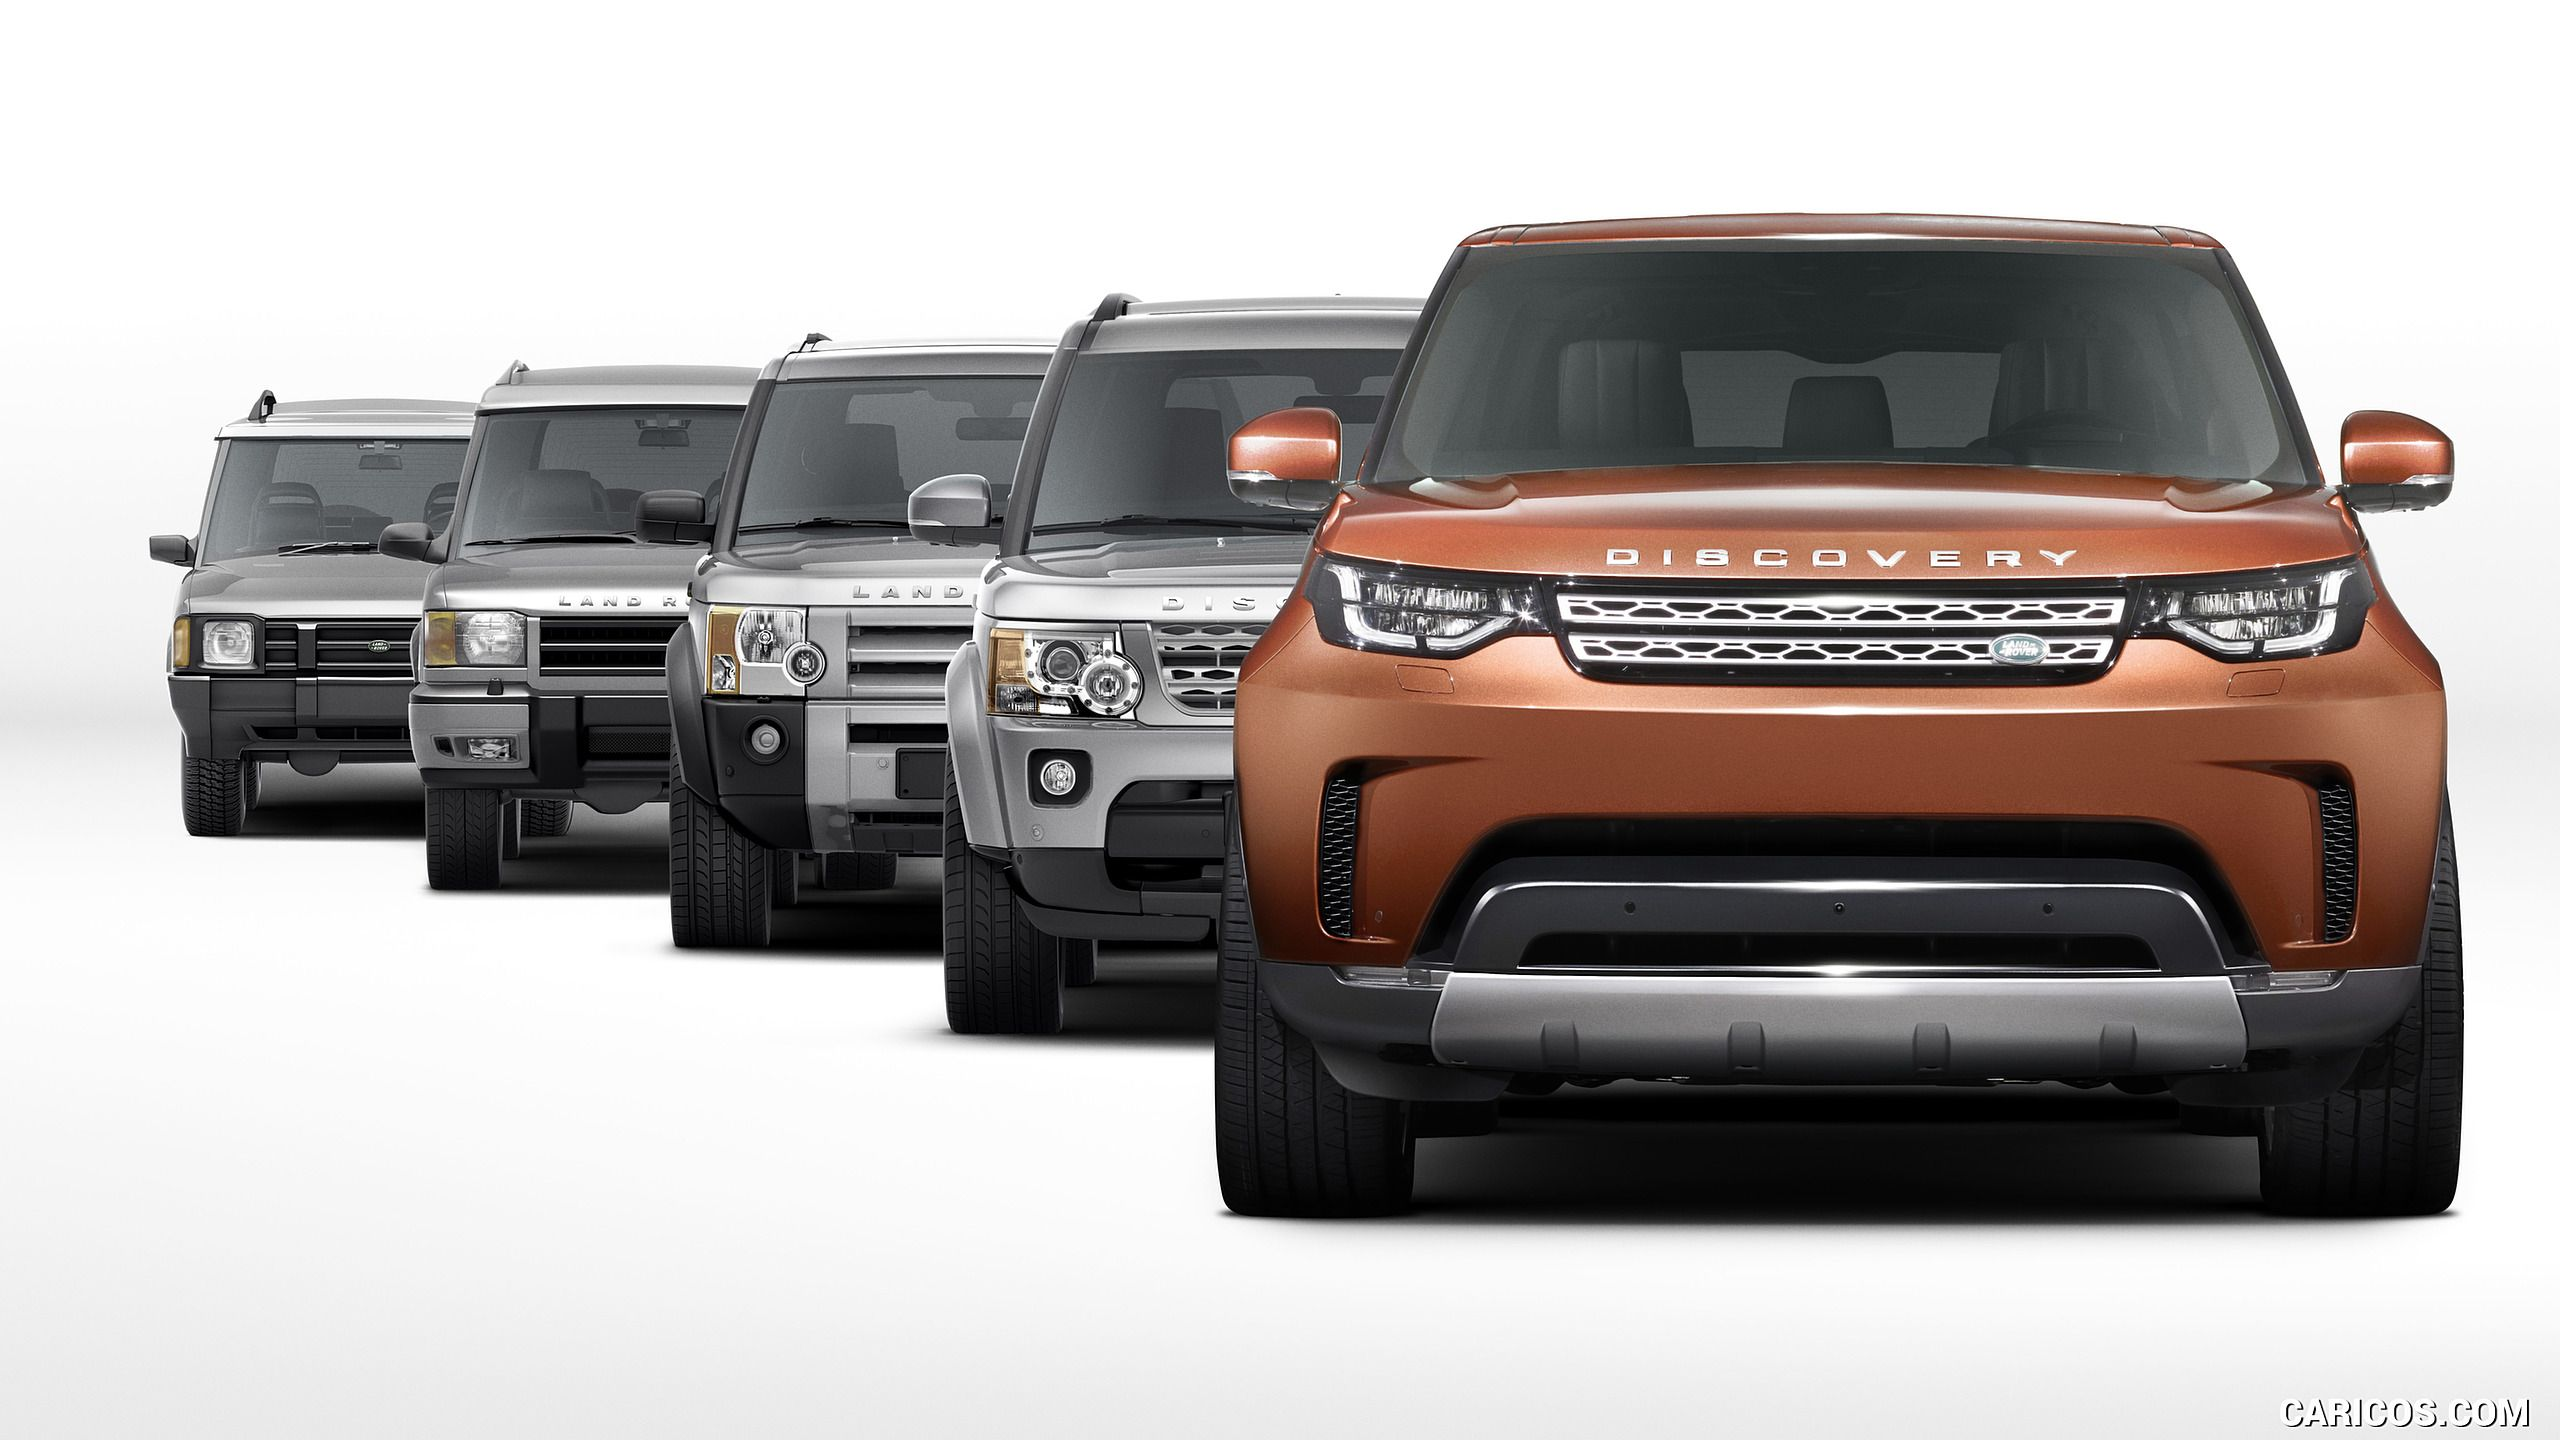 2018 Land Rover Discovery Generations HD